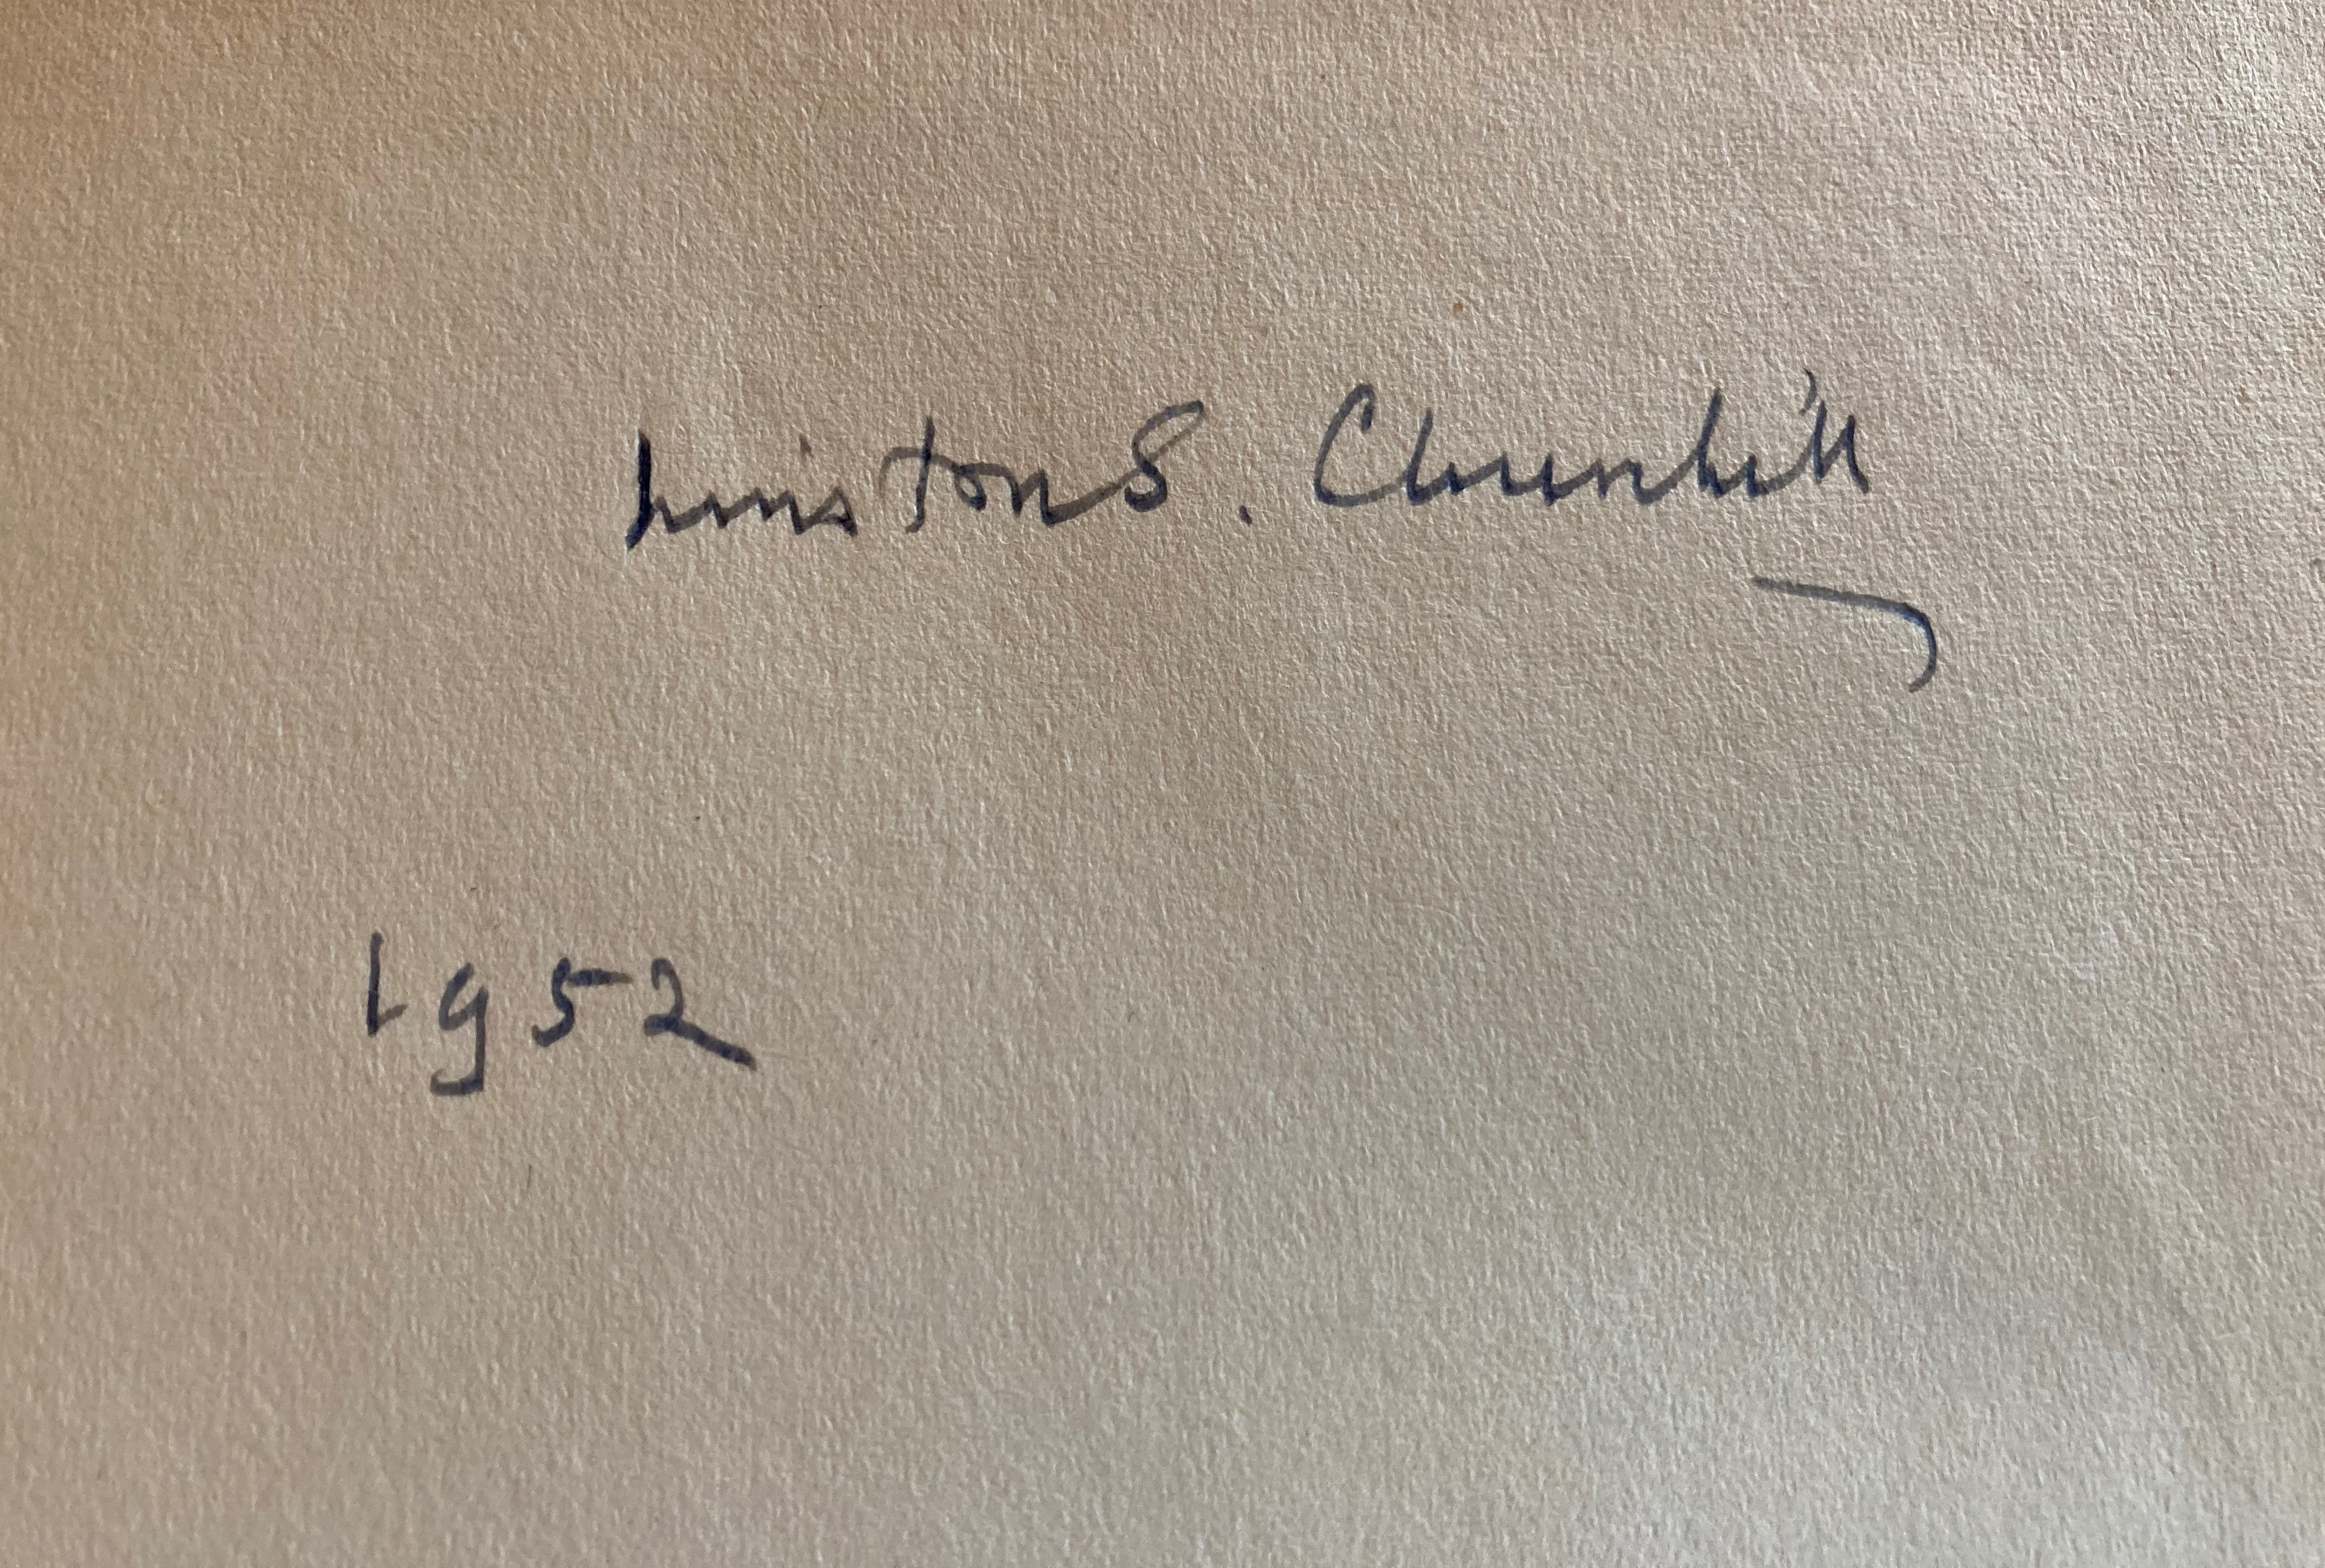 Signed by the Authorÿ Churchill (Winston S.)ÿTheir Finest Hour, Second World War, Vol. II only, - Image 5 of 22